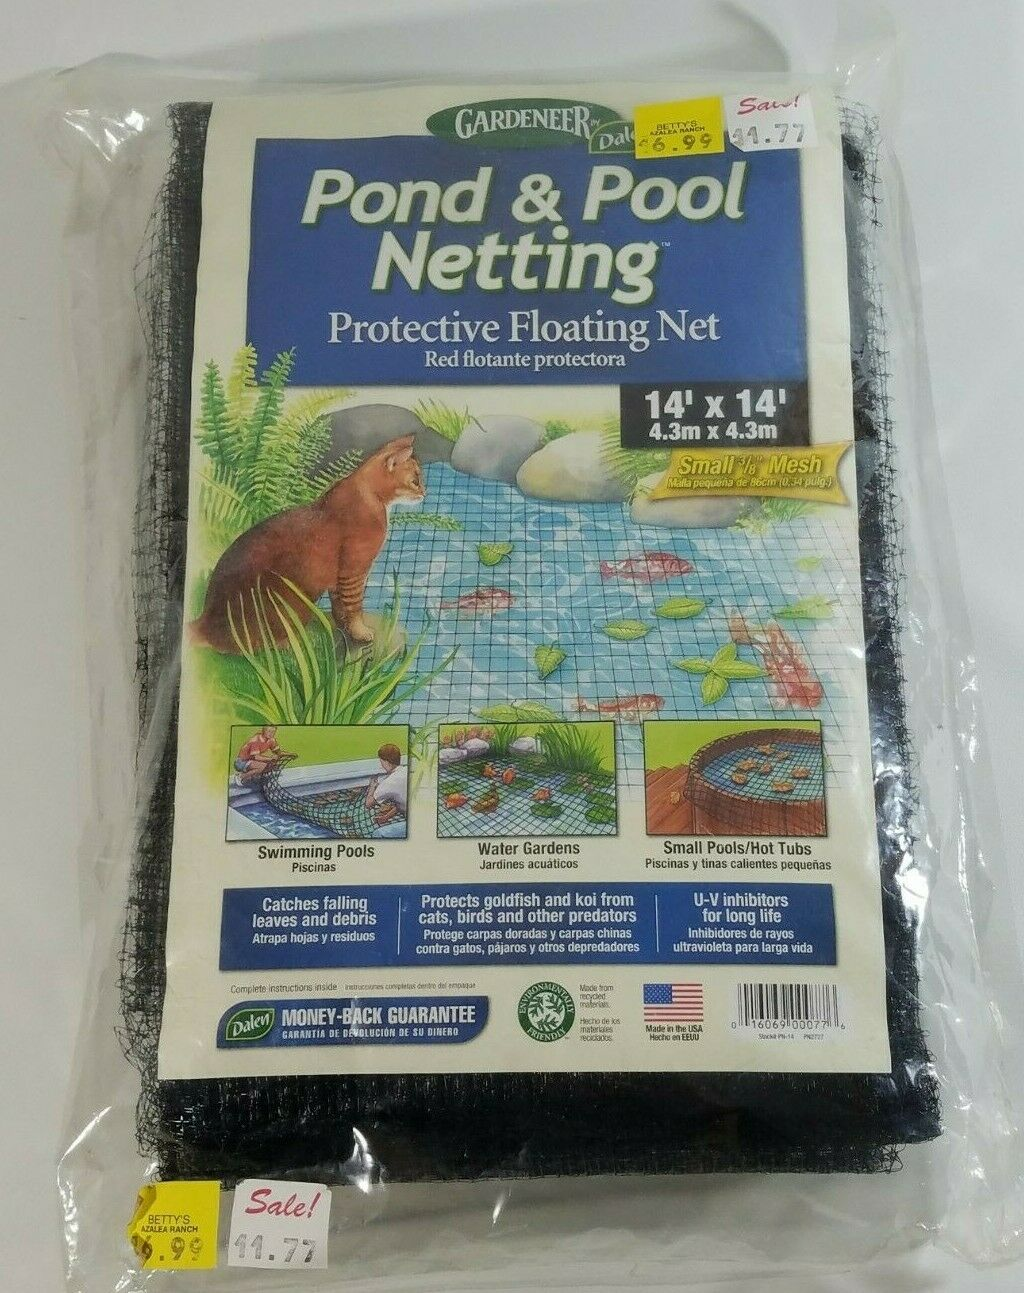 Pool Pond Protective Floating Net 14'x14' Netting Leaf and Fish Net Mesh